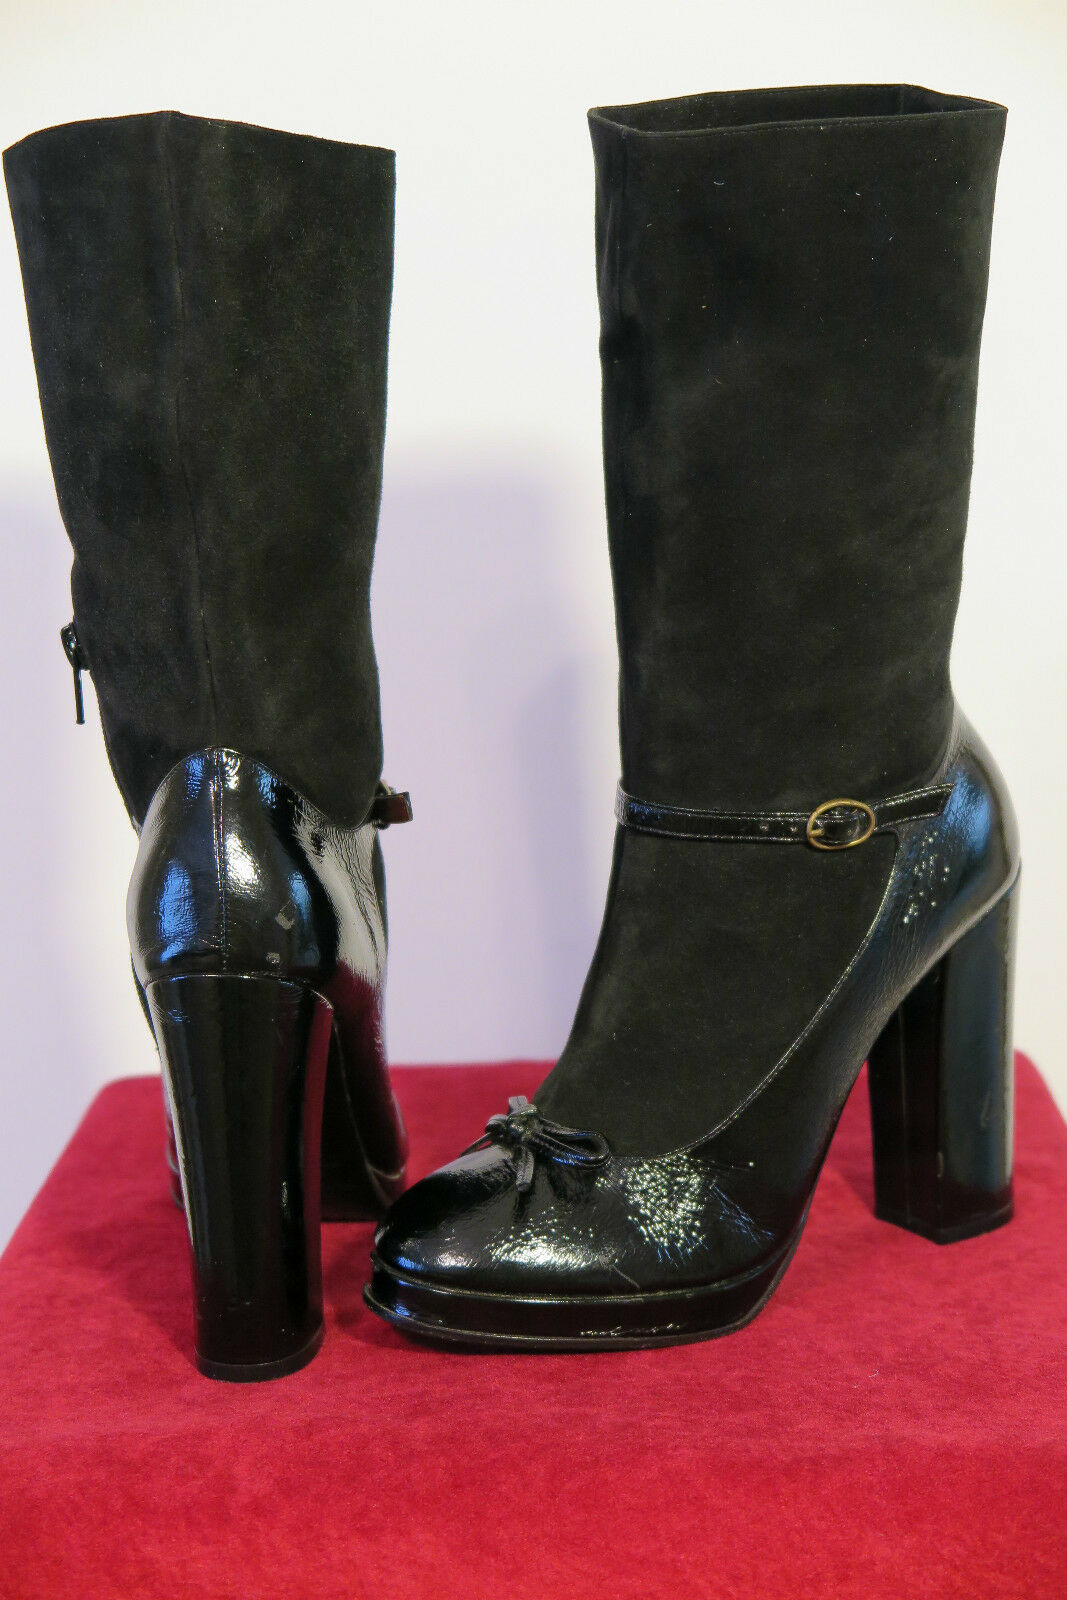 NWOB Marc by Marc Jacobs Suede Patent Leather Mary Jane Boots Sz 6.5B MSRP 725